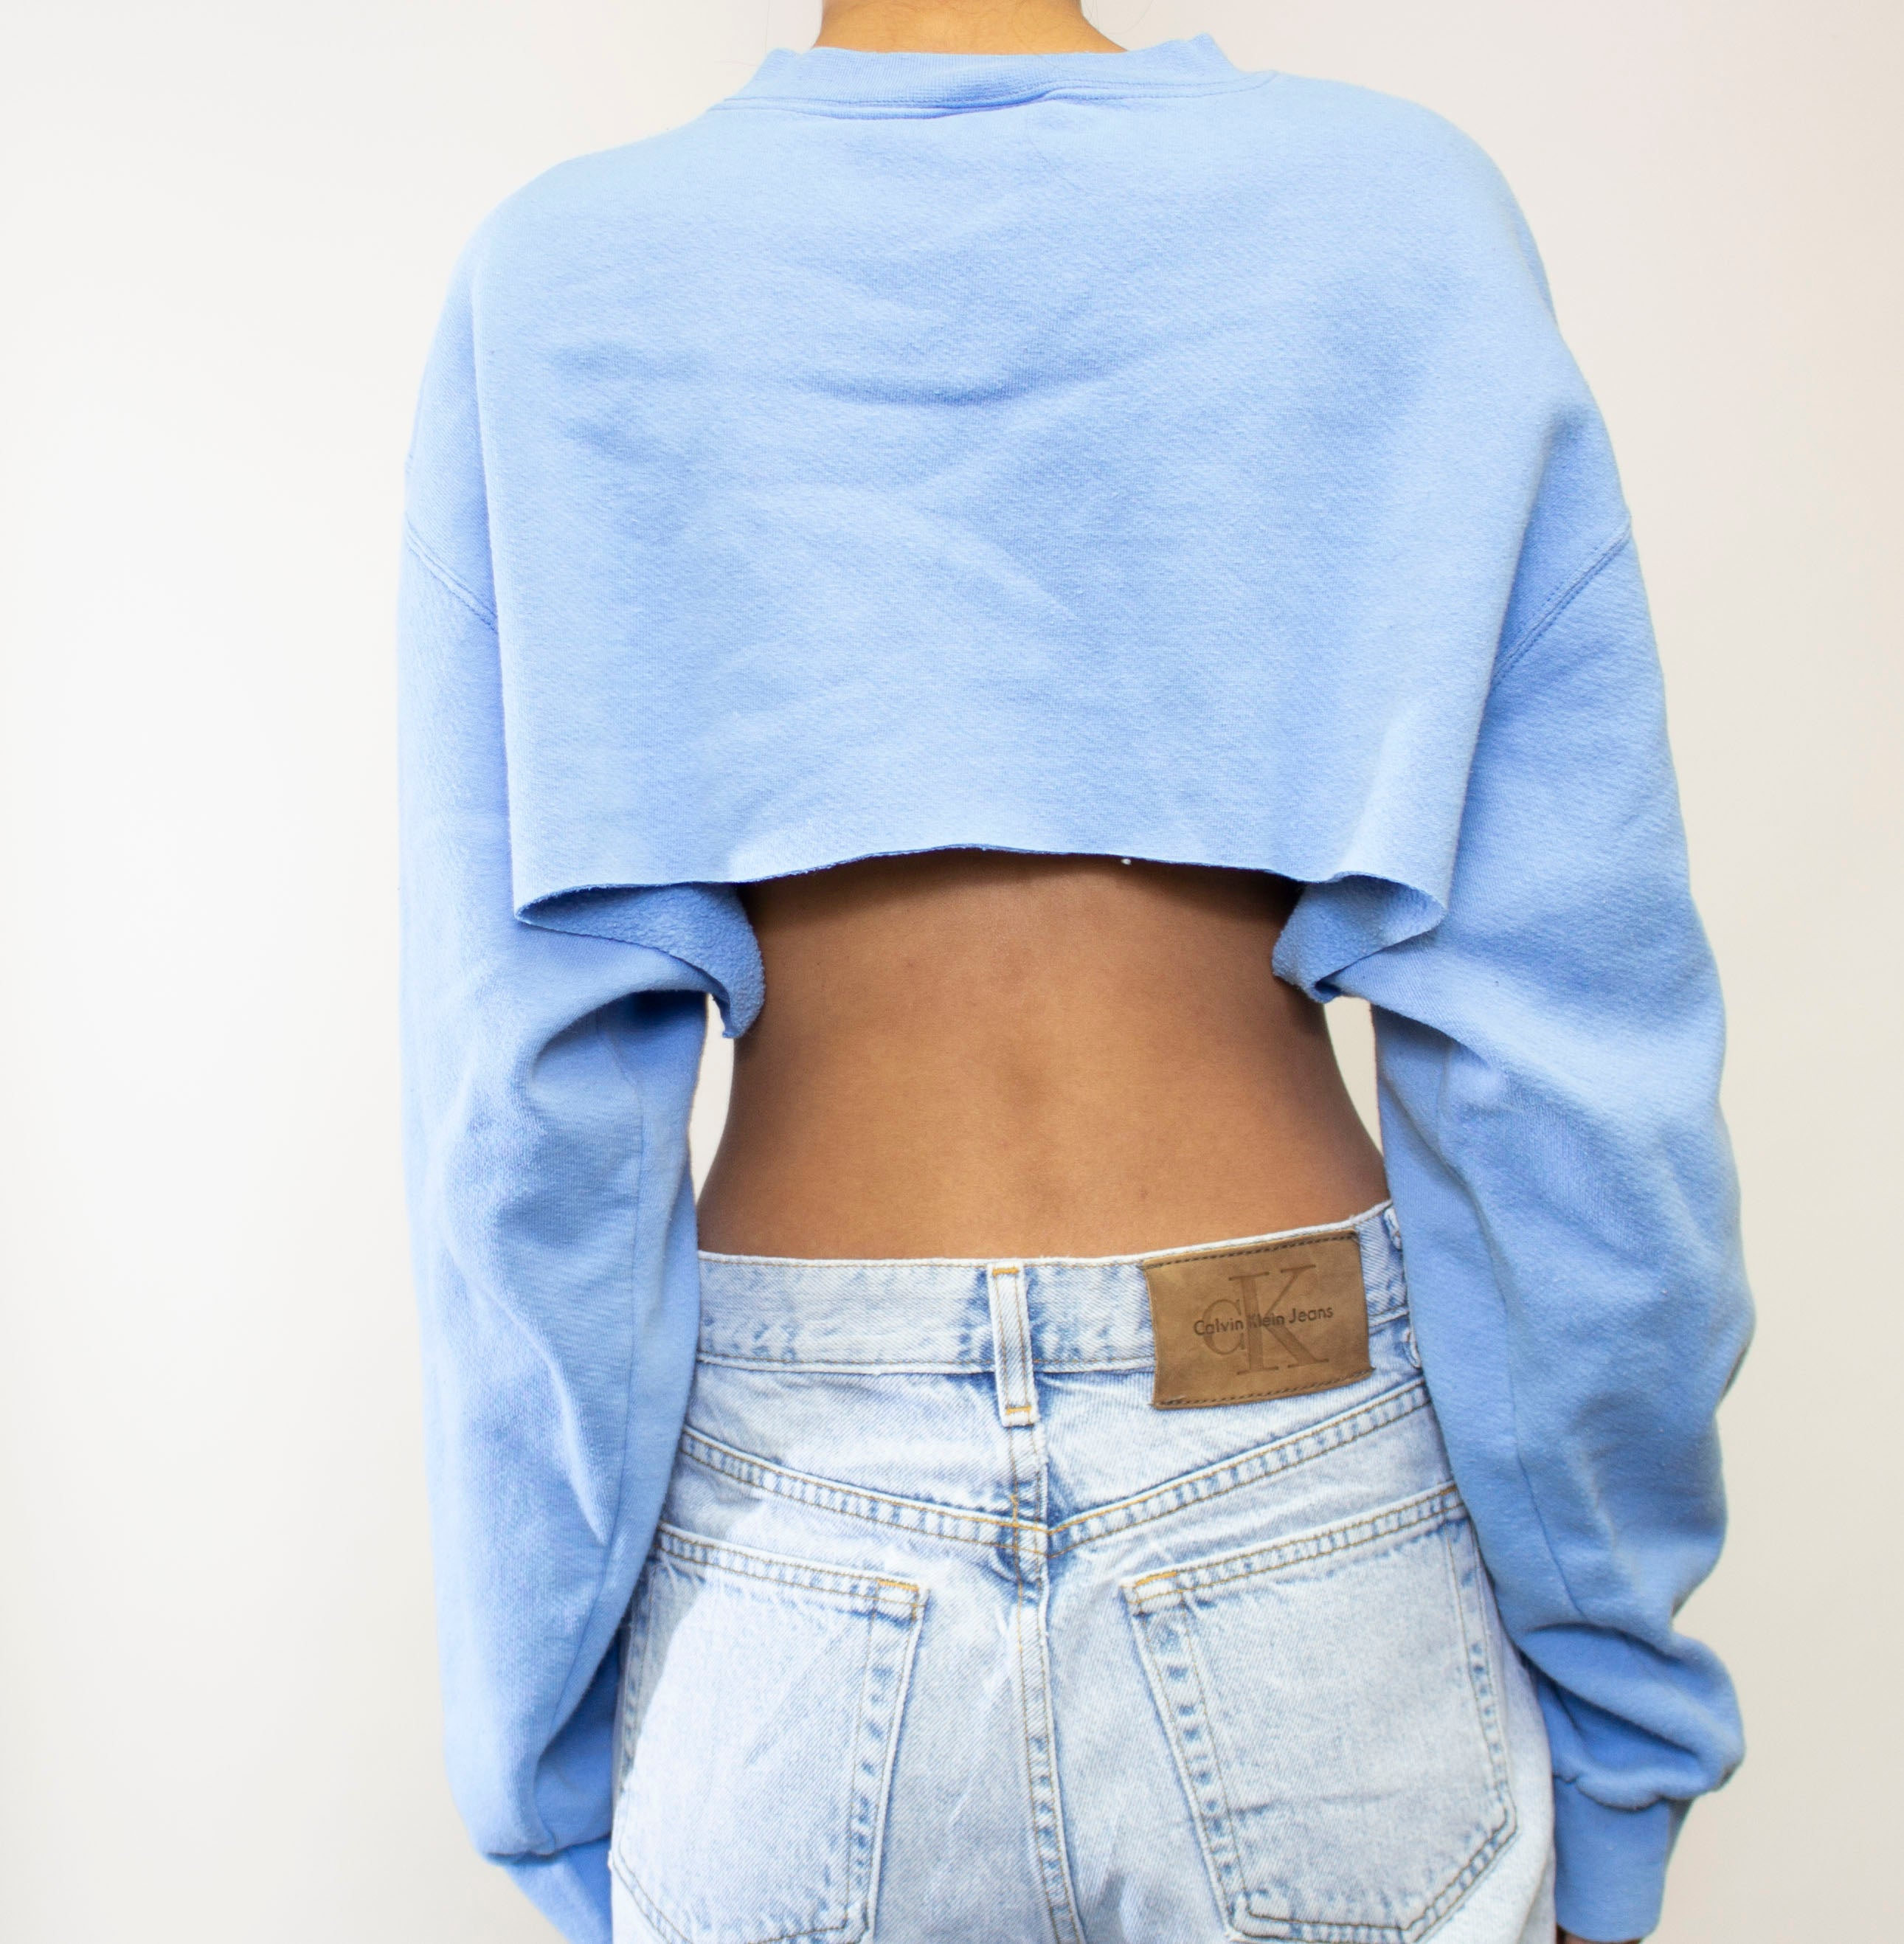 Baby Blue Nike Extreme Crop